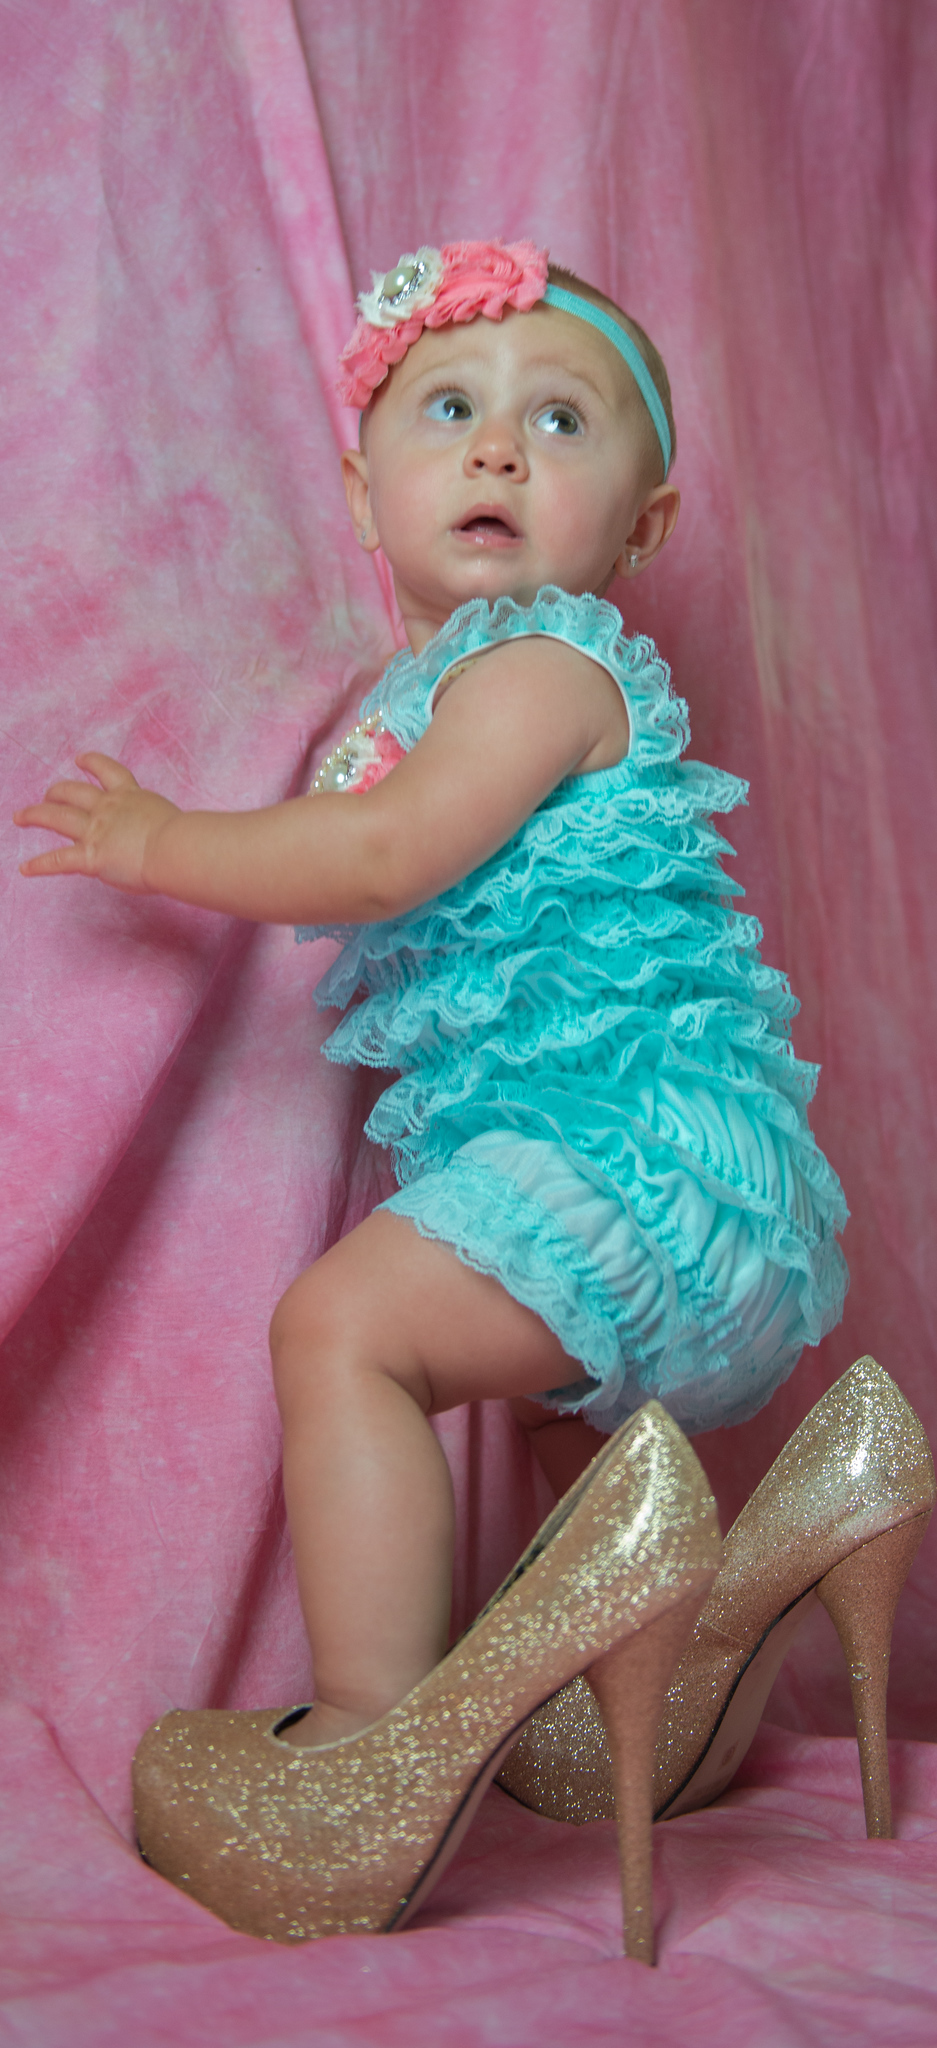 Lila Everly outtakes-0123.jpg